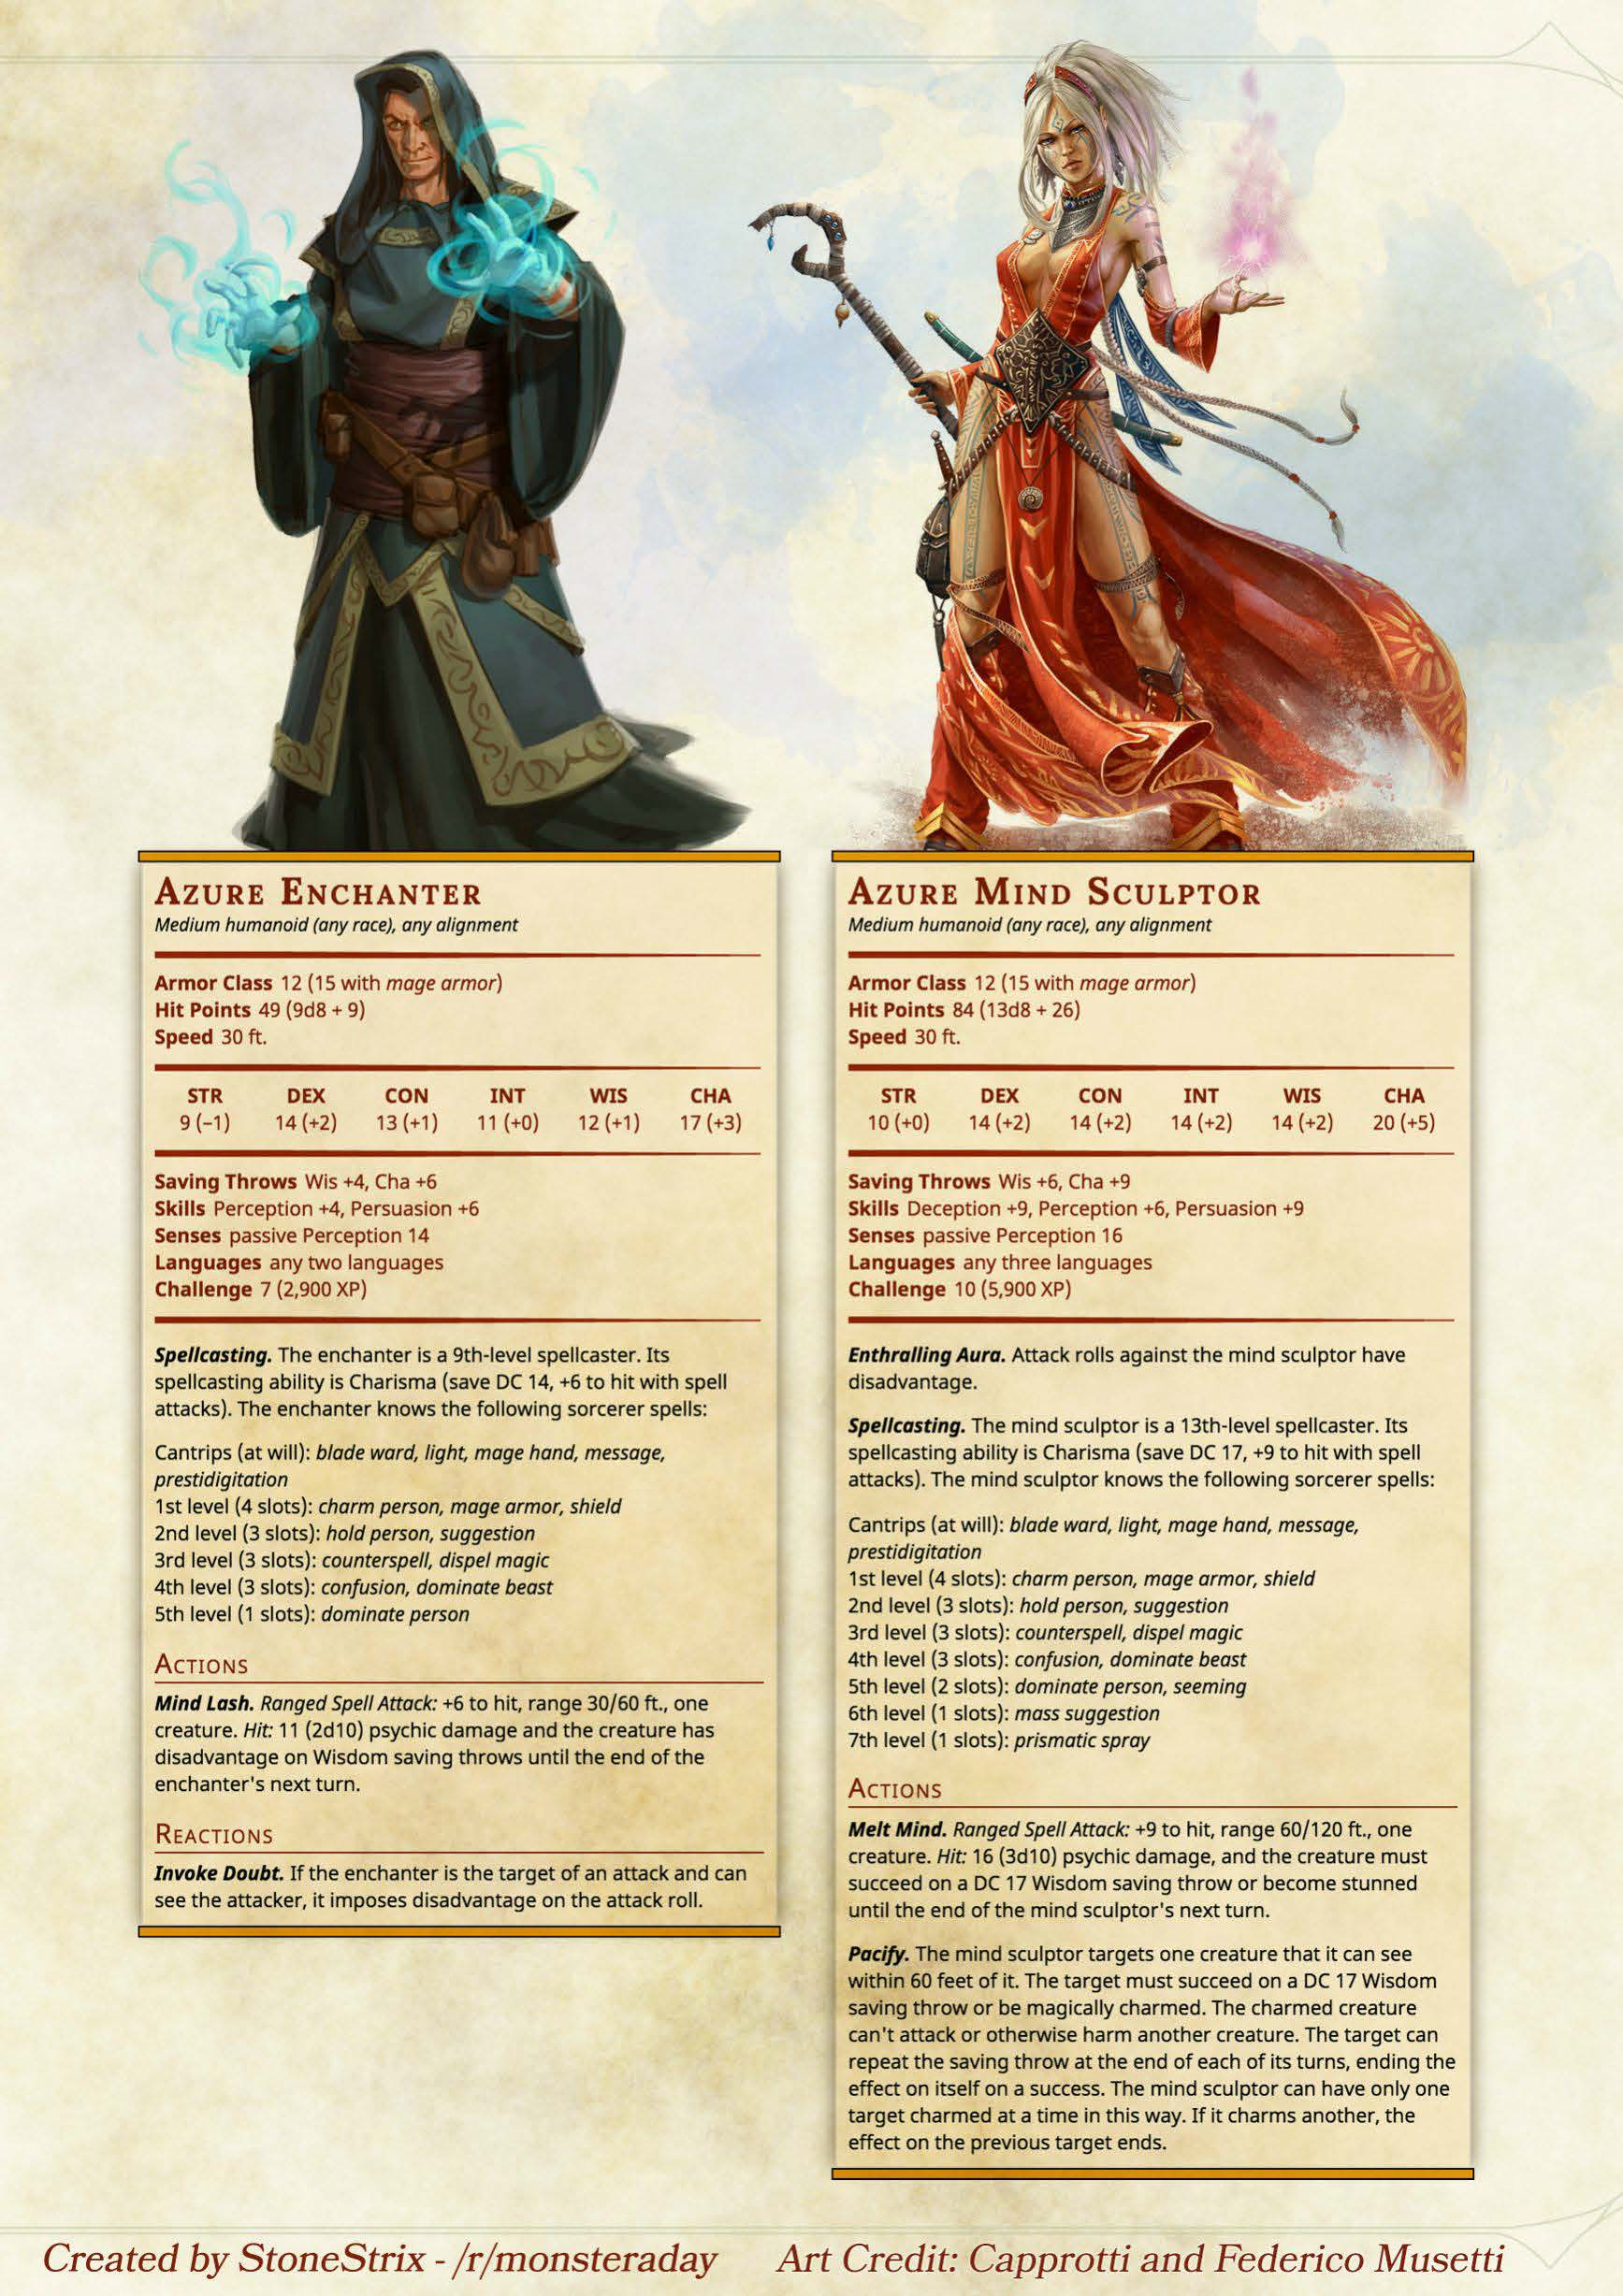 Dungeons & dragons 5th edition monster manual monster by.